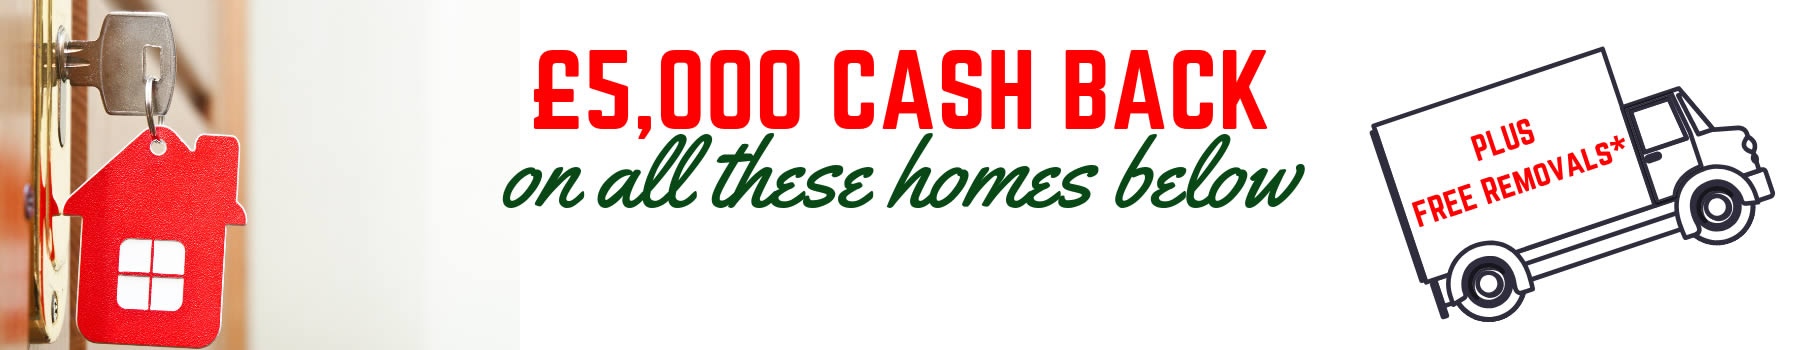 5000 cashback on following homes divider banner